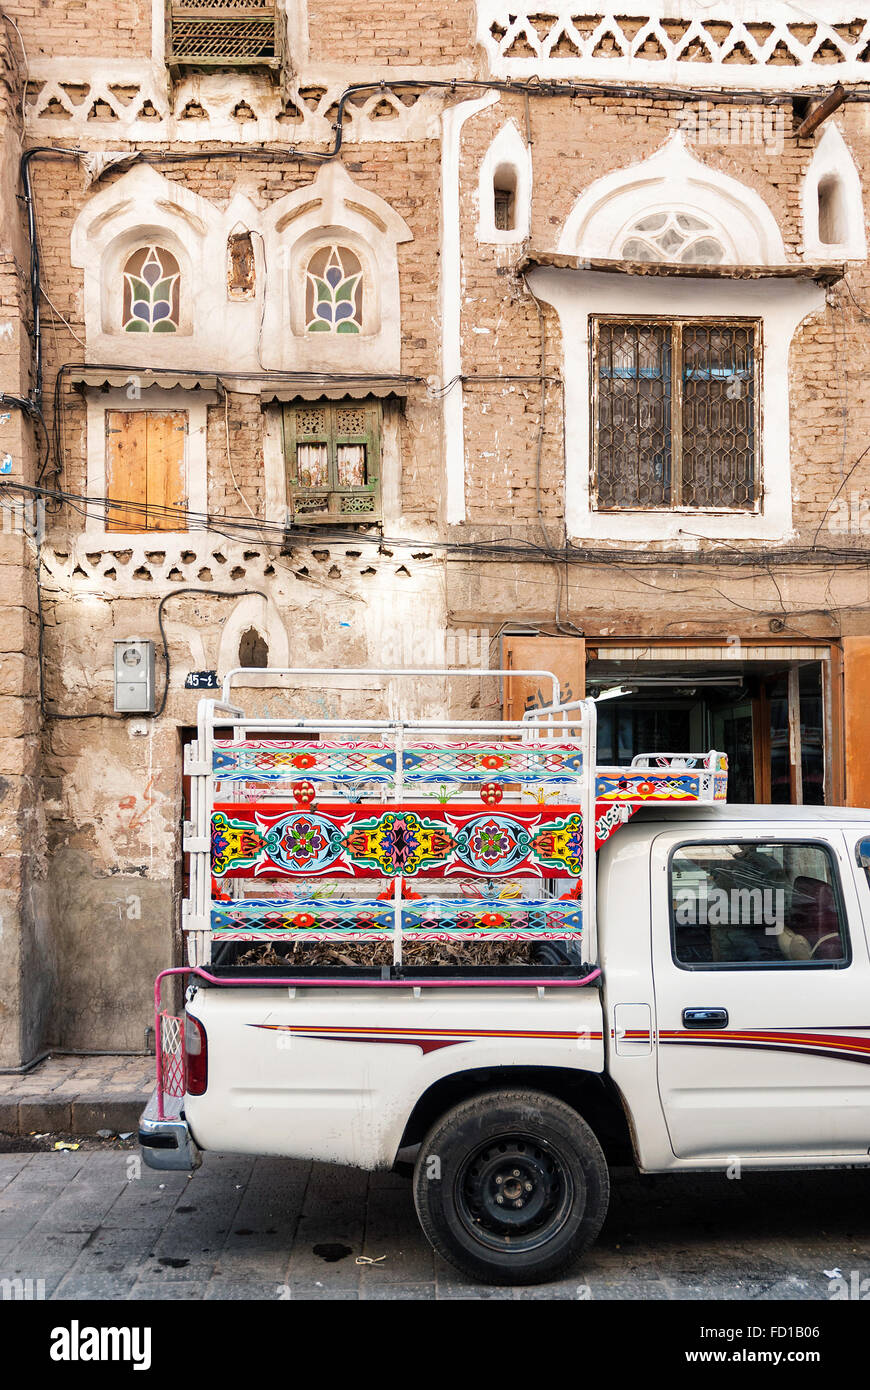 decorated pickup truck in sanaa city old town in yemen - Stock Image